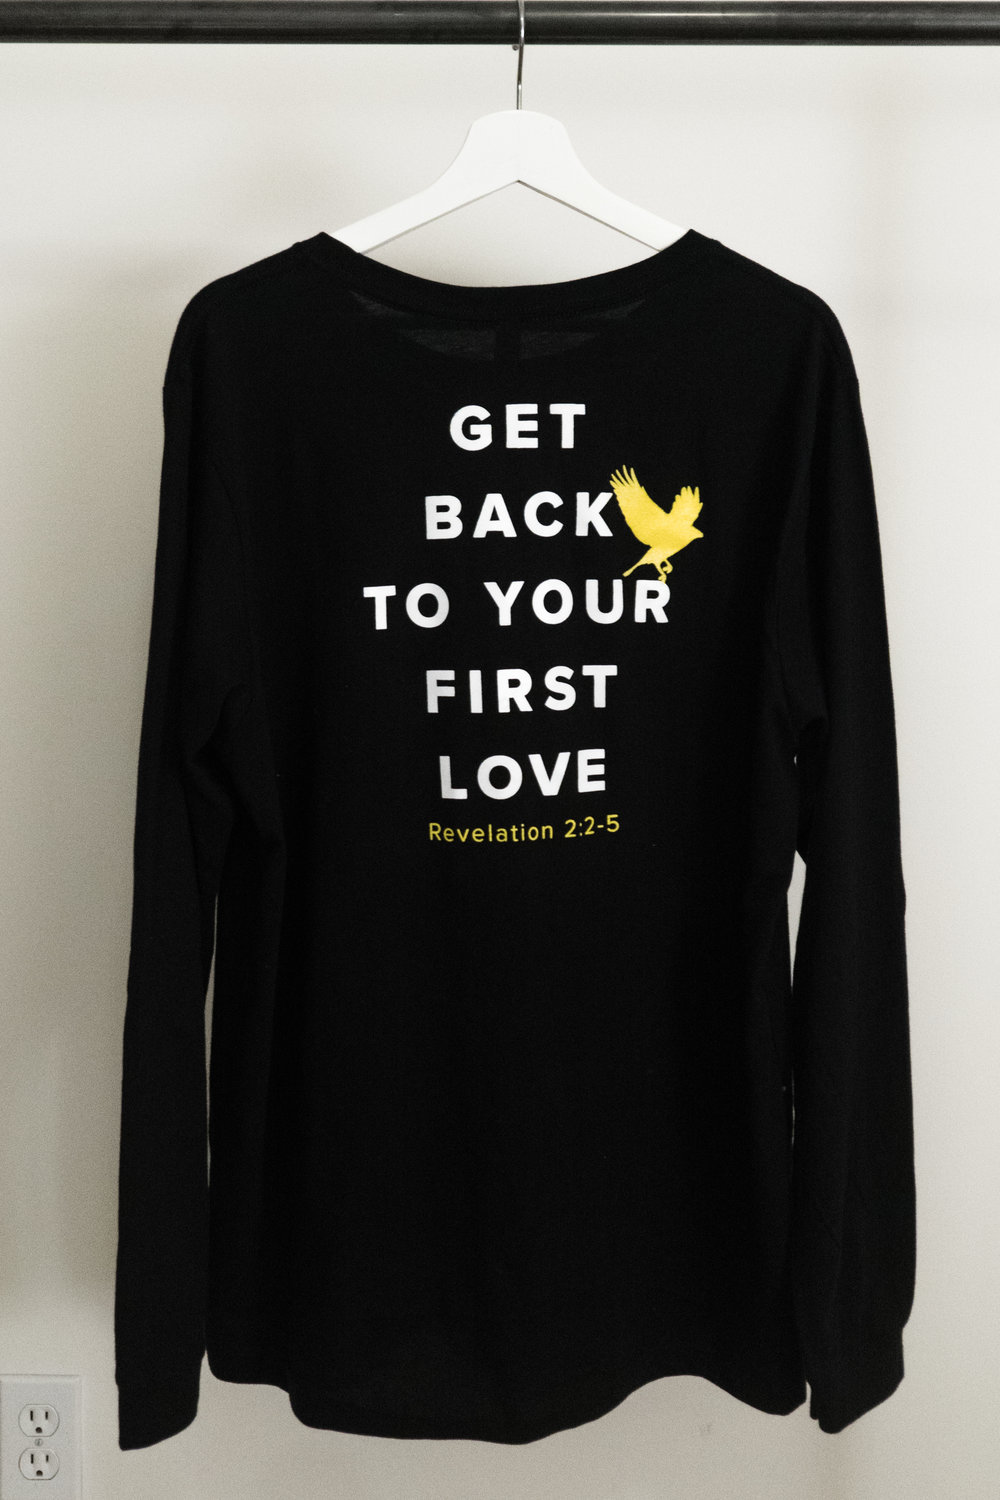 GET BACK TO YOUR FIRST LOVE // BLACK LONG SLEEVE LISTEN. We all do it. We get distracted and side tracked and we lose sight of our God-Given purpose! But this shirt will remind you and everyone you come in contact with to realign your sight to Him and refocus your attention BACK TO YOUR FIRST LOVE.